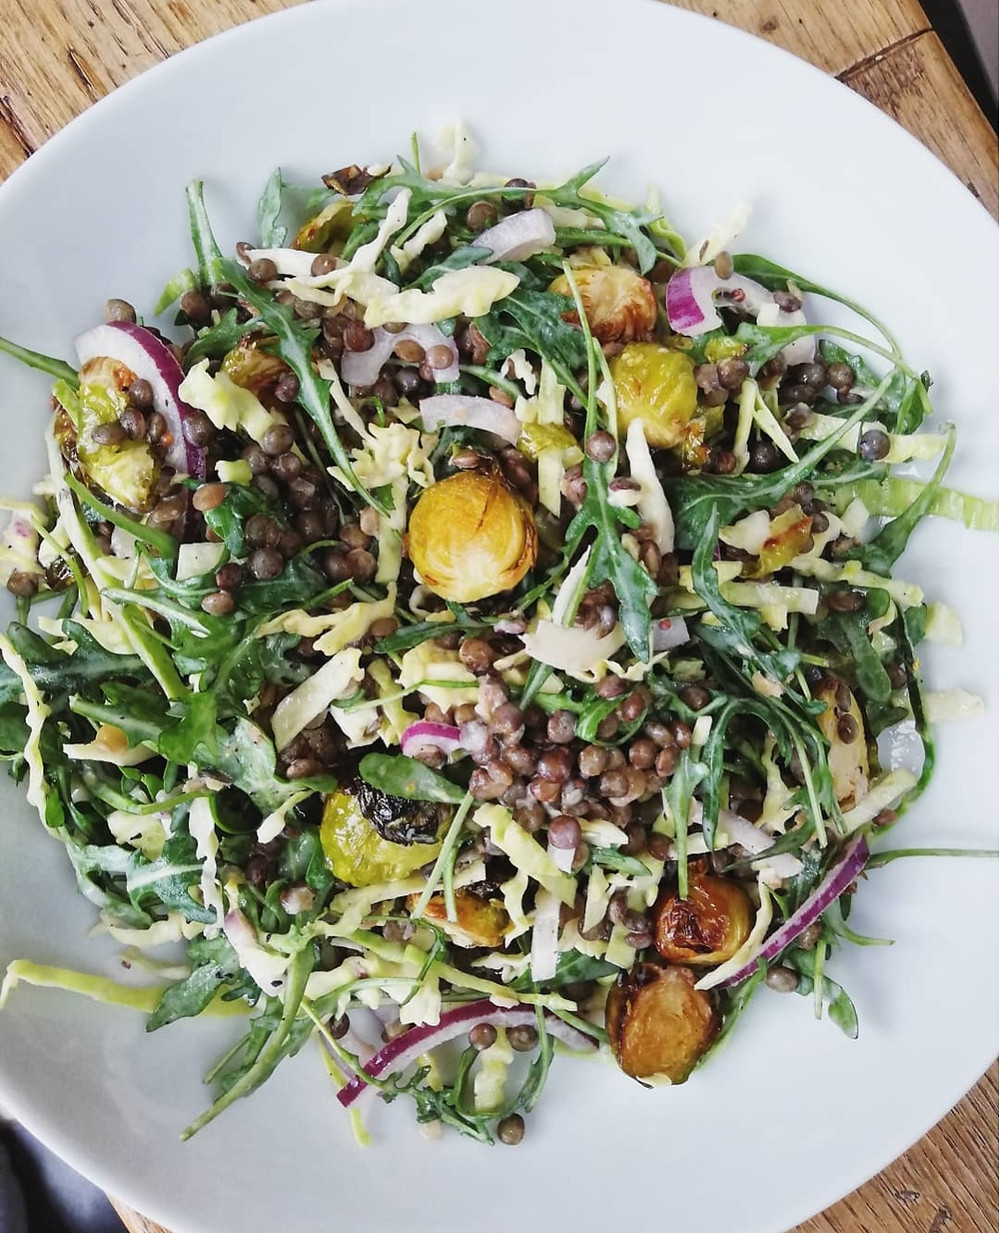 Roasted Sprout Salad with Puy Lentils, Cabbage & Creamy Yoghurt Dressing